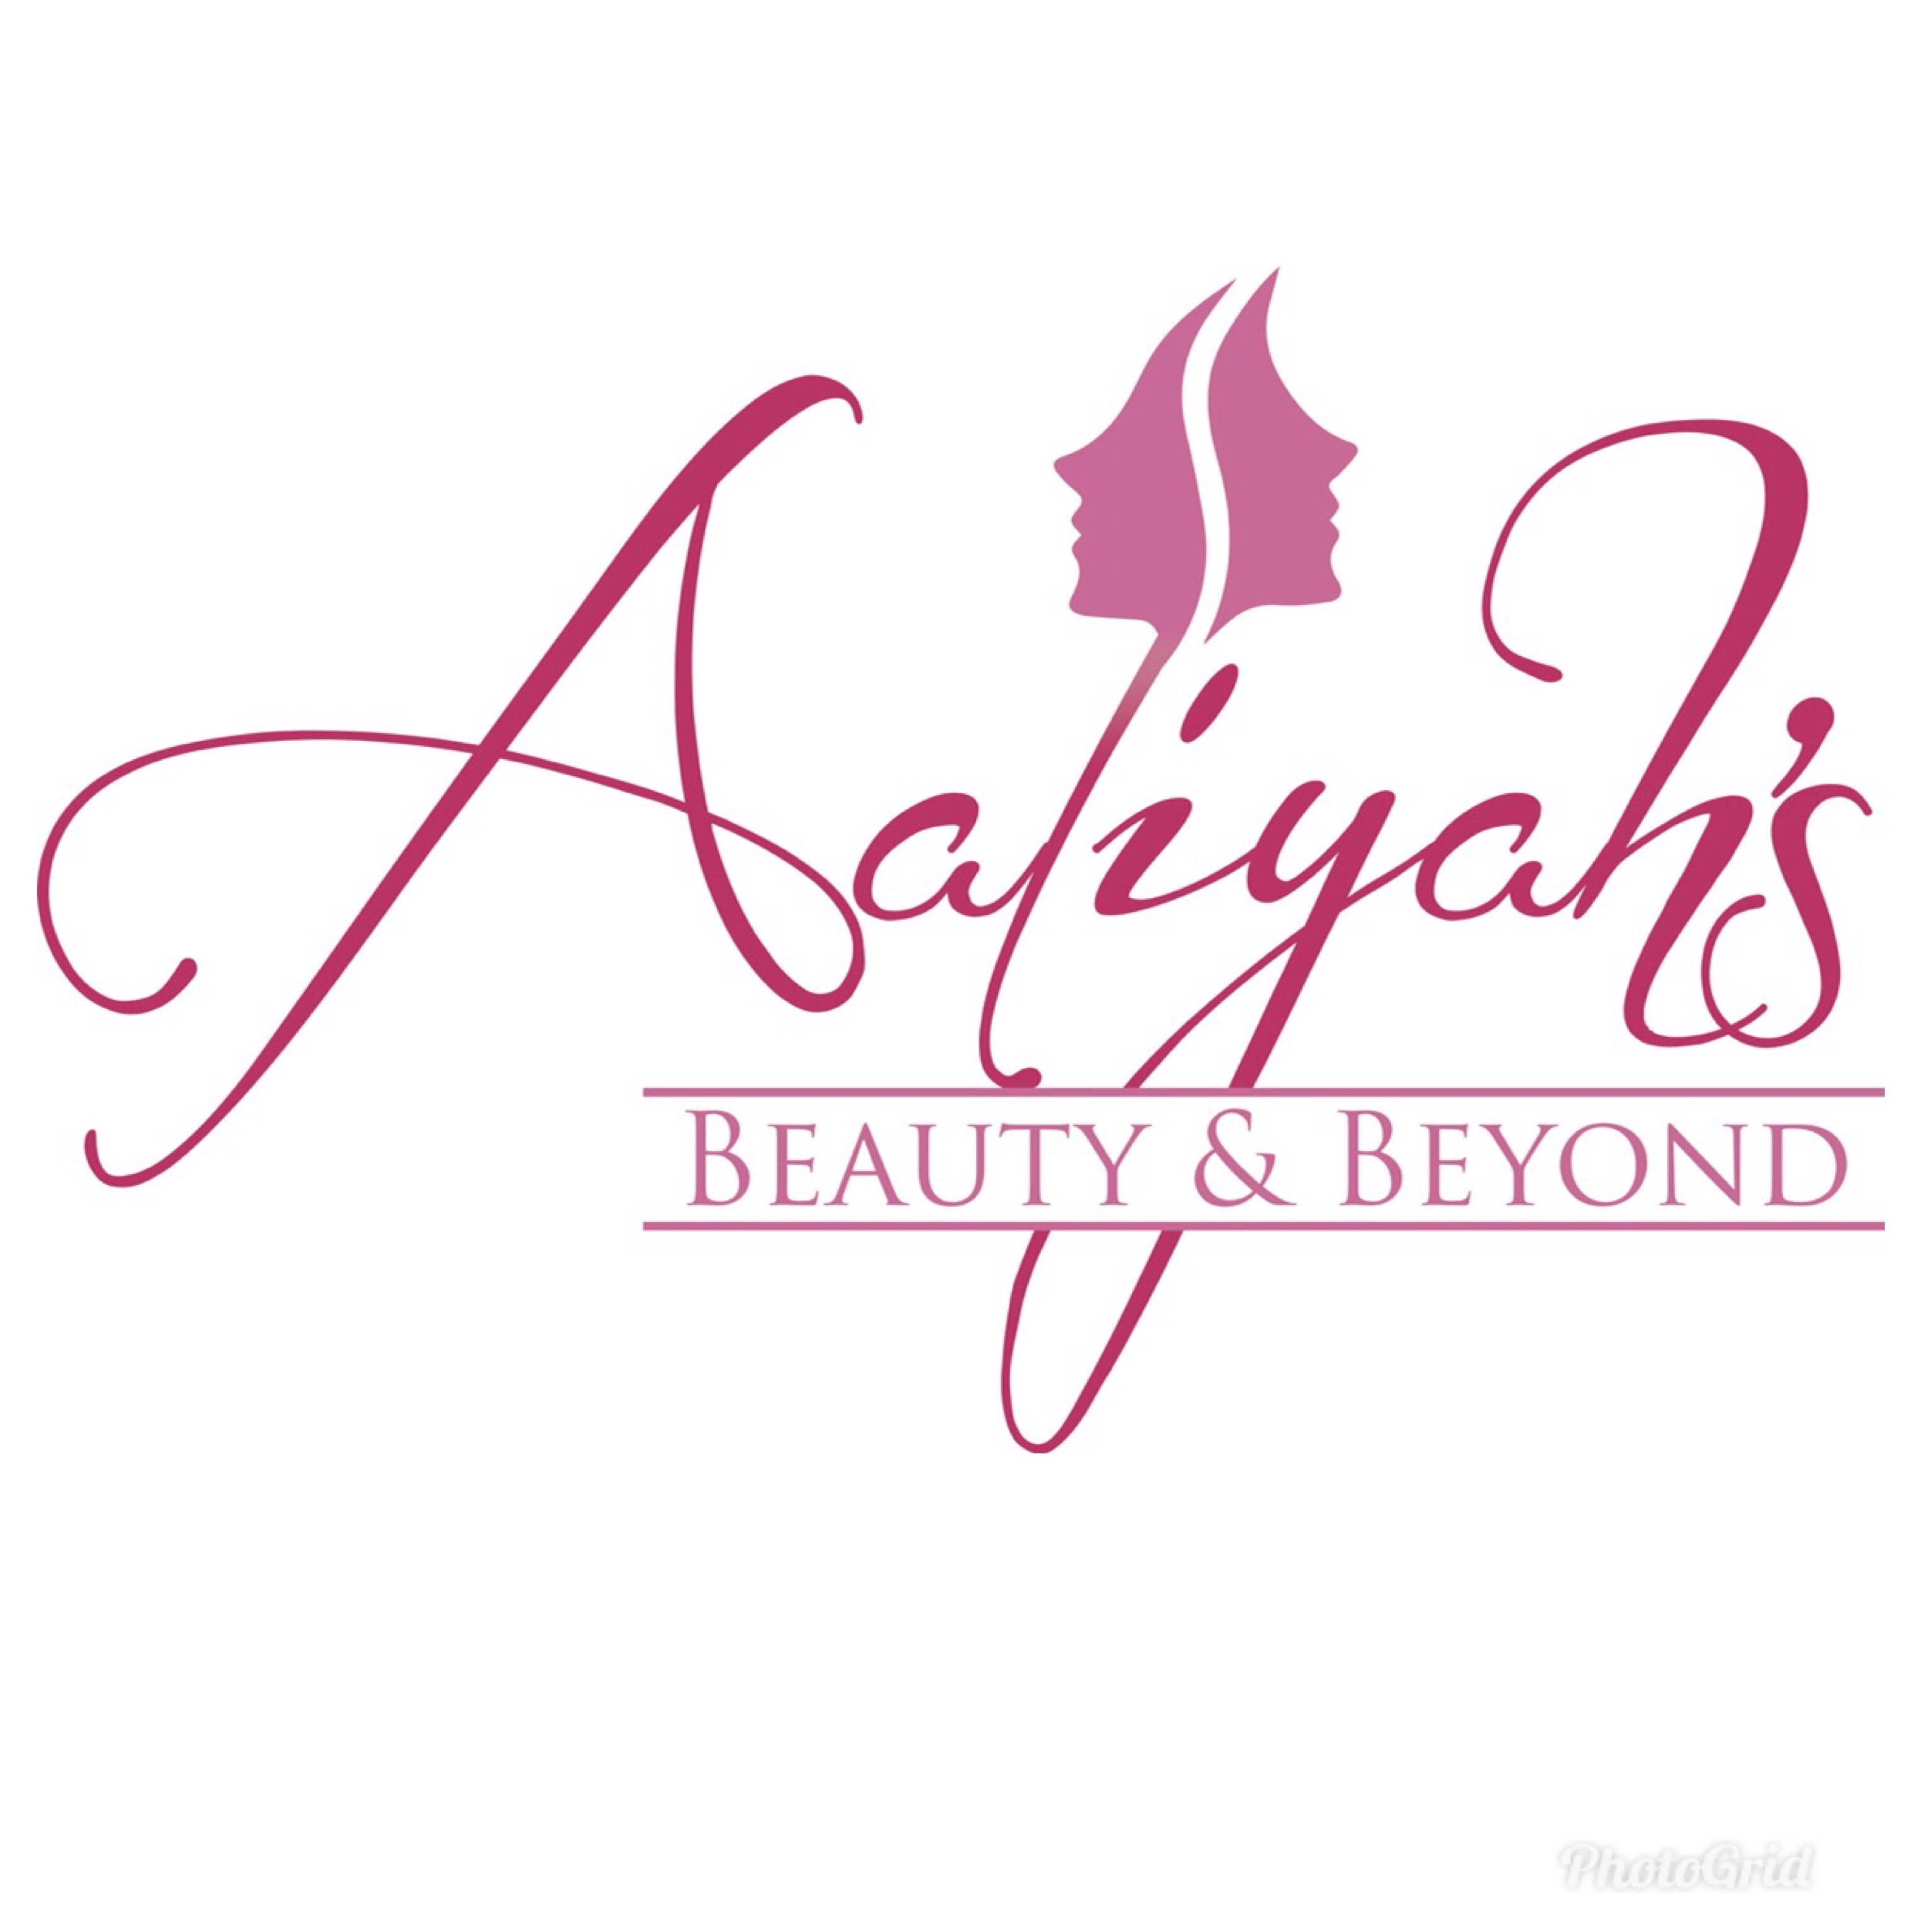 Aaliyahs Beauty & Beyond in Duncanville, TX